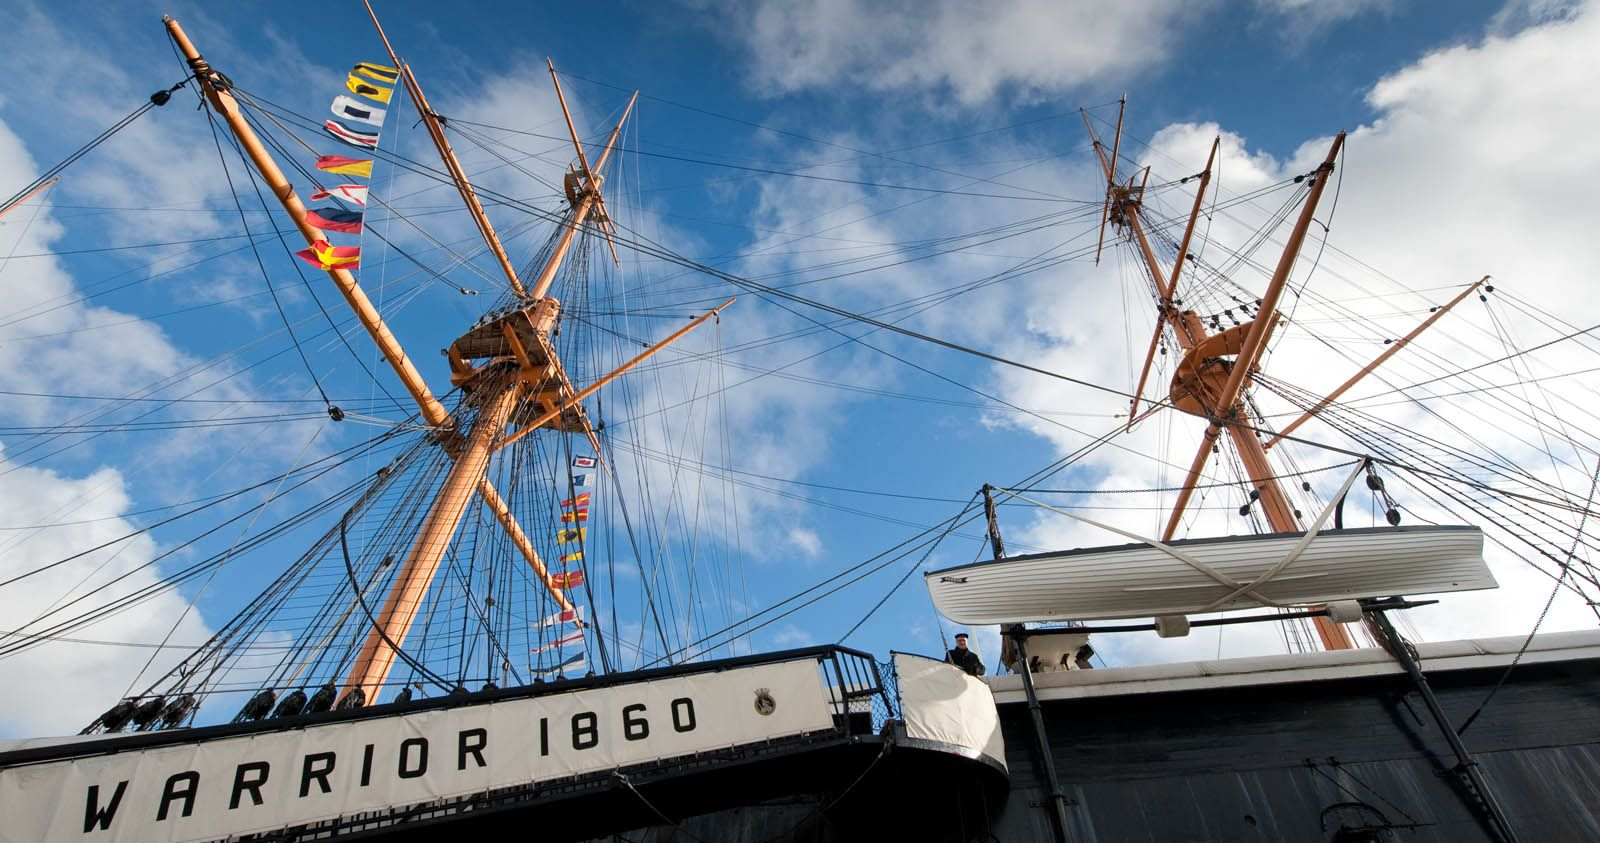 Enjoy the atmospheric and powerful HMS Warrior 1860